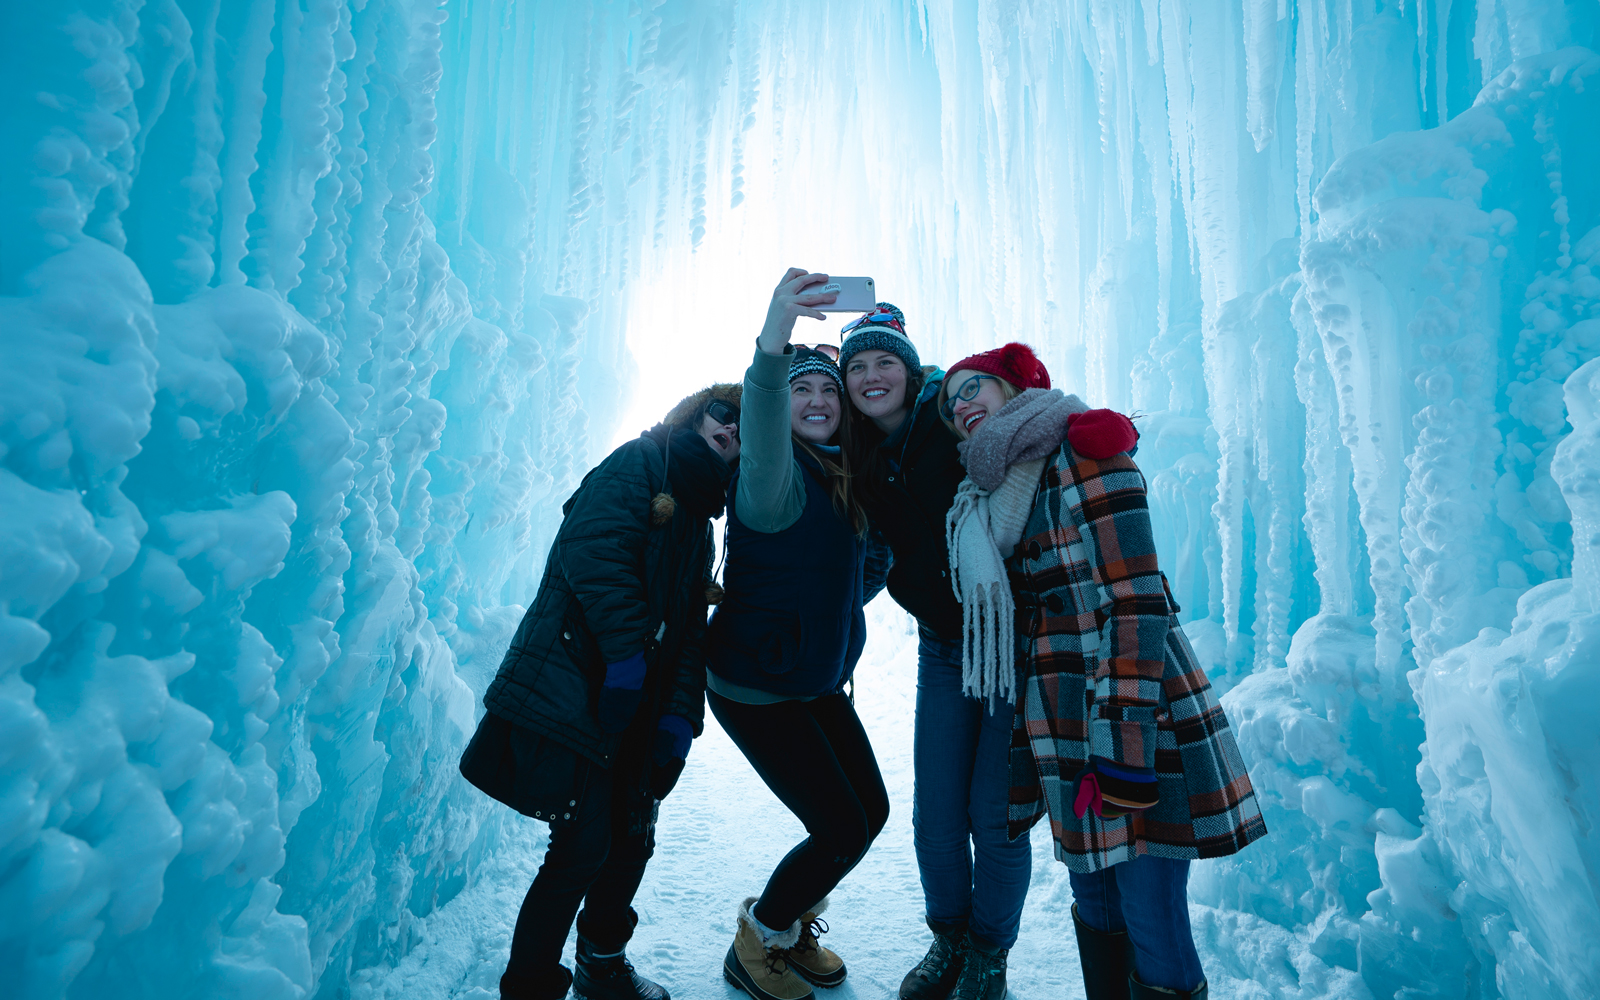 Friends at Ice Castle